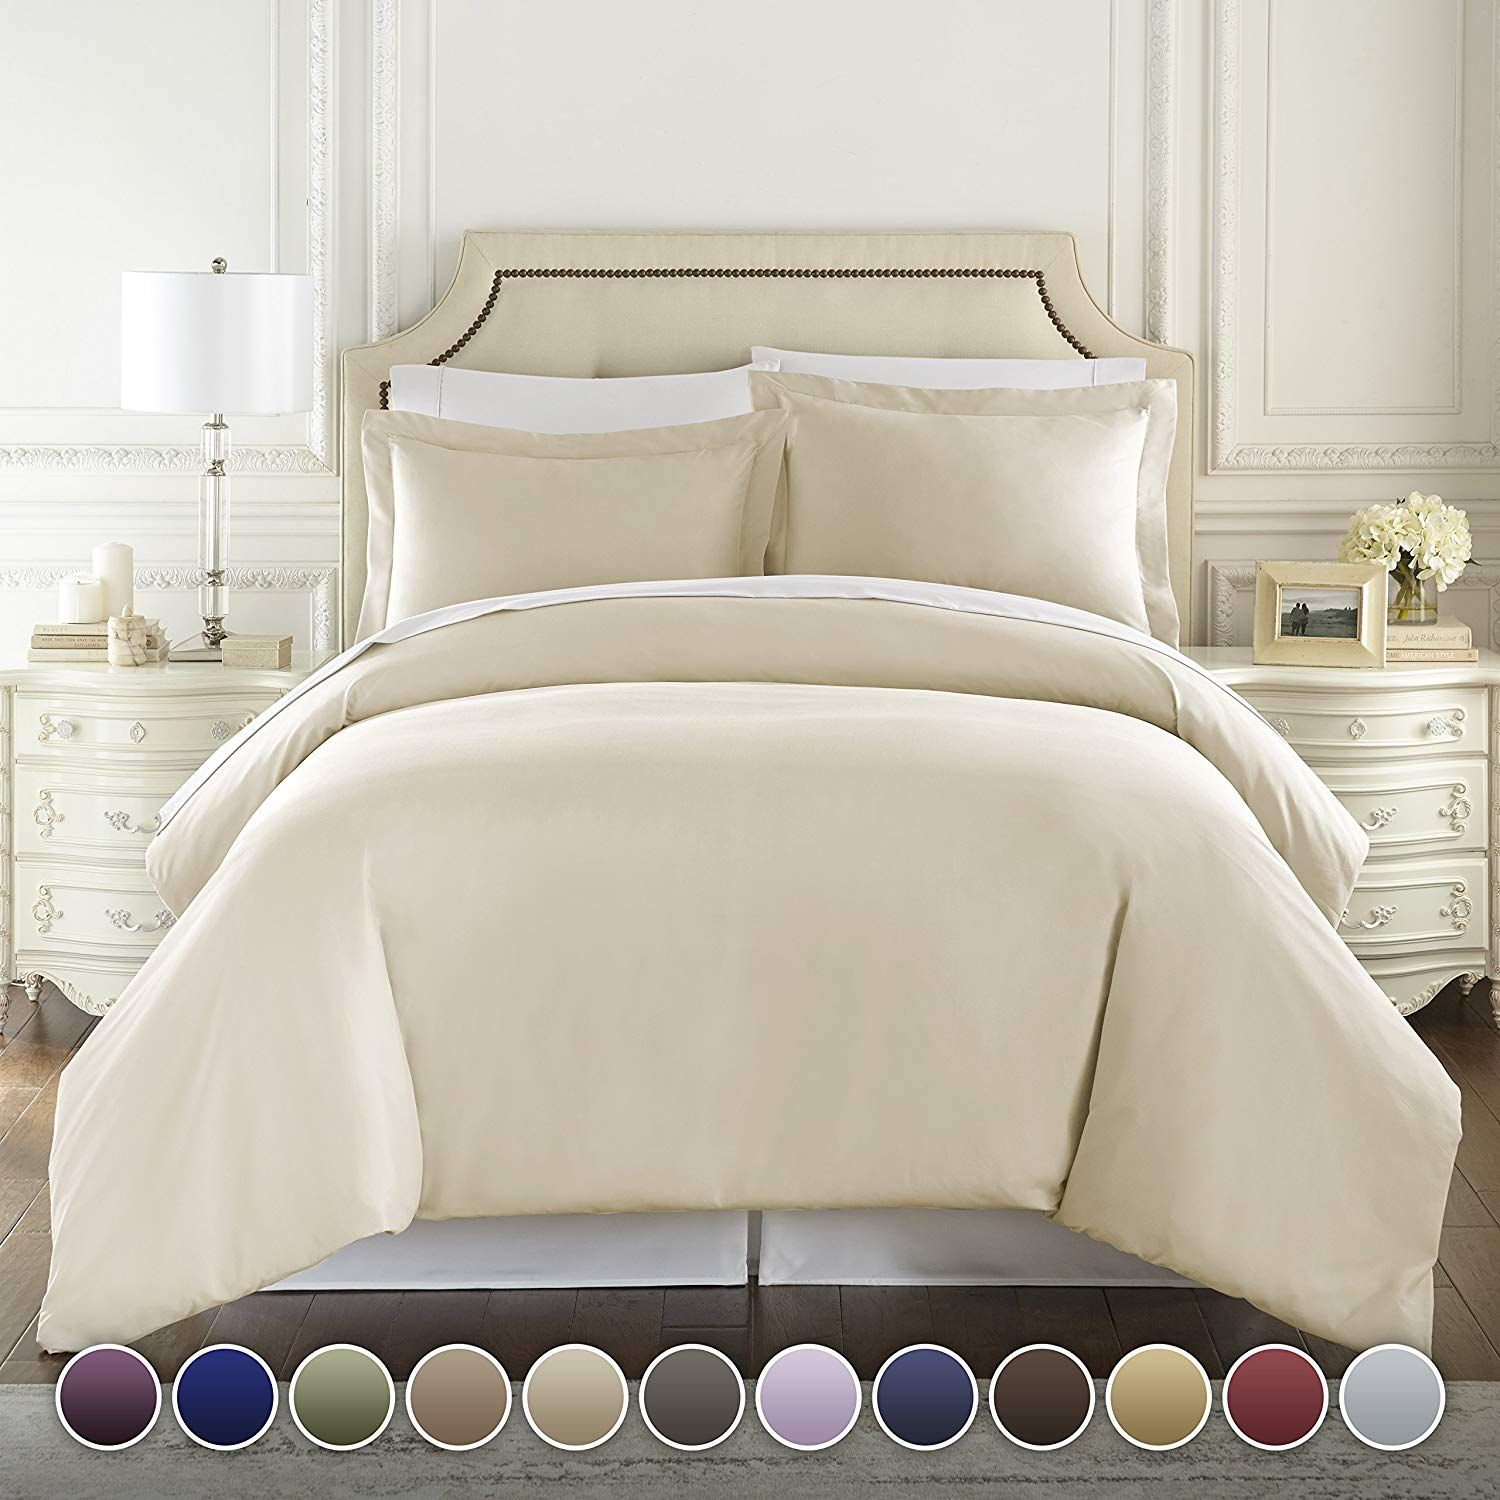 Amazon.com: 1500 Thread Count Egyptian Quality Duvet Cover set, King Taupe: Home & Kitchen ...